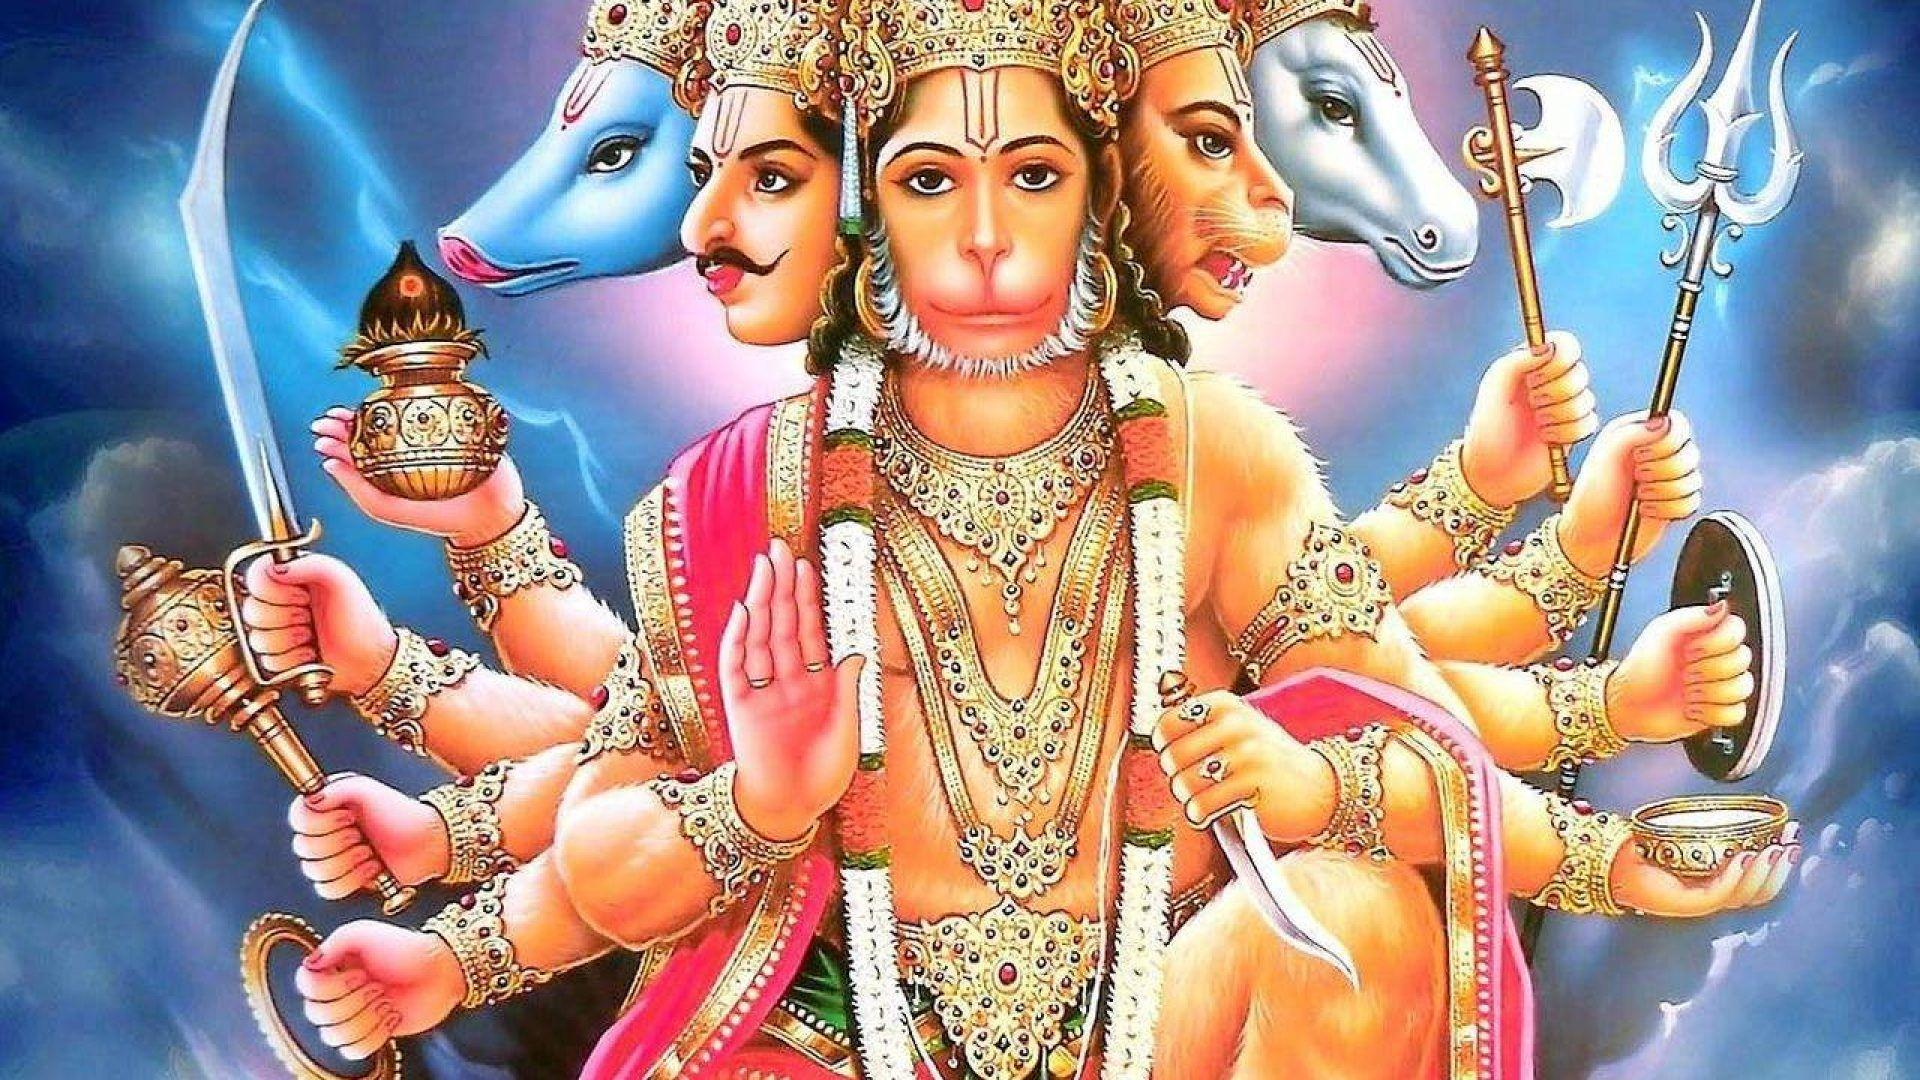 Hanuman Ji Hd Wallpapers Wallpaper Cave